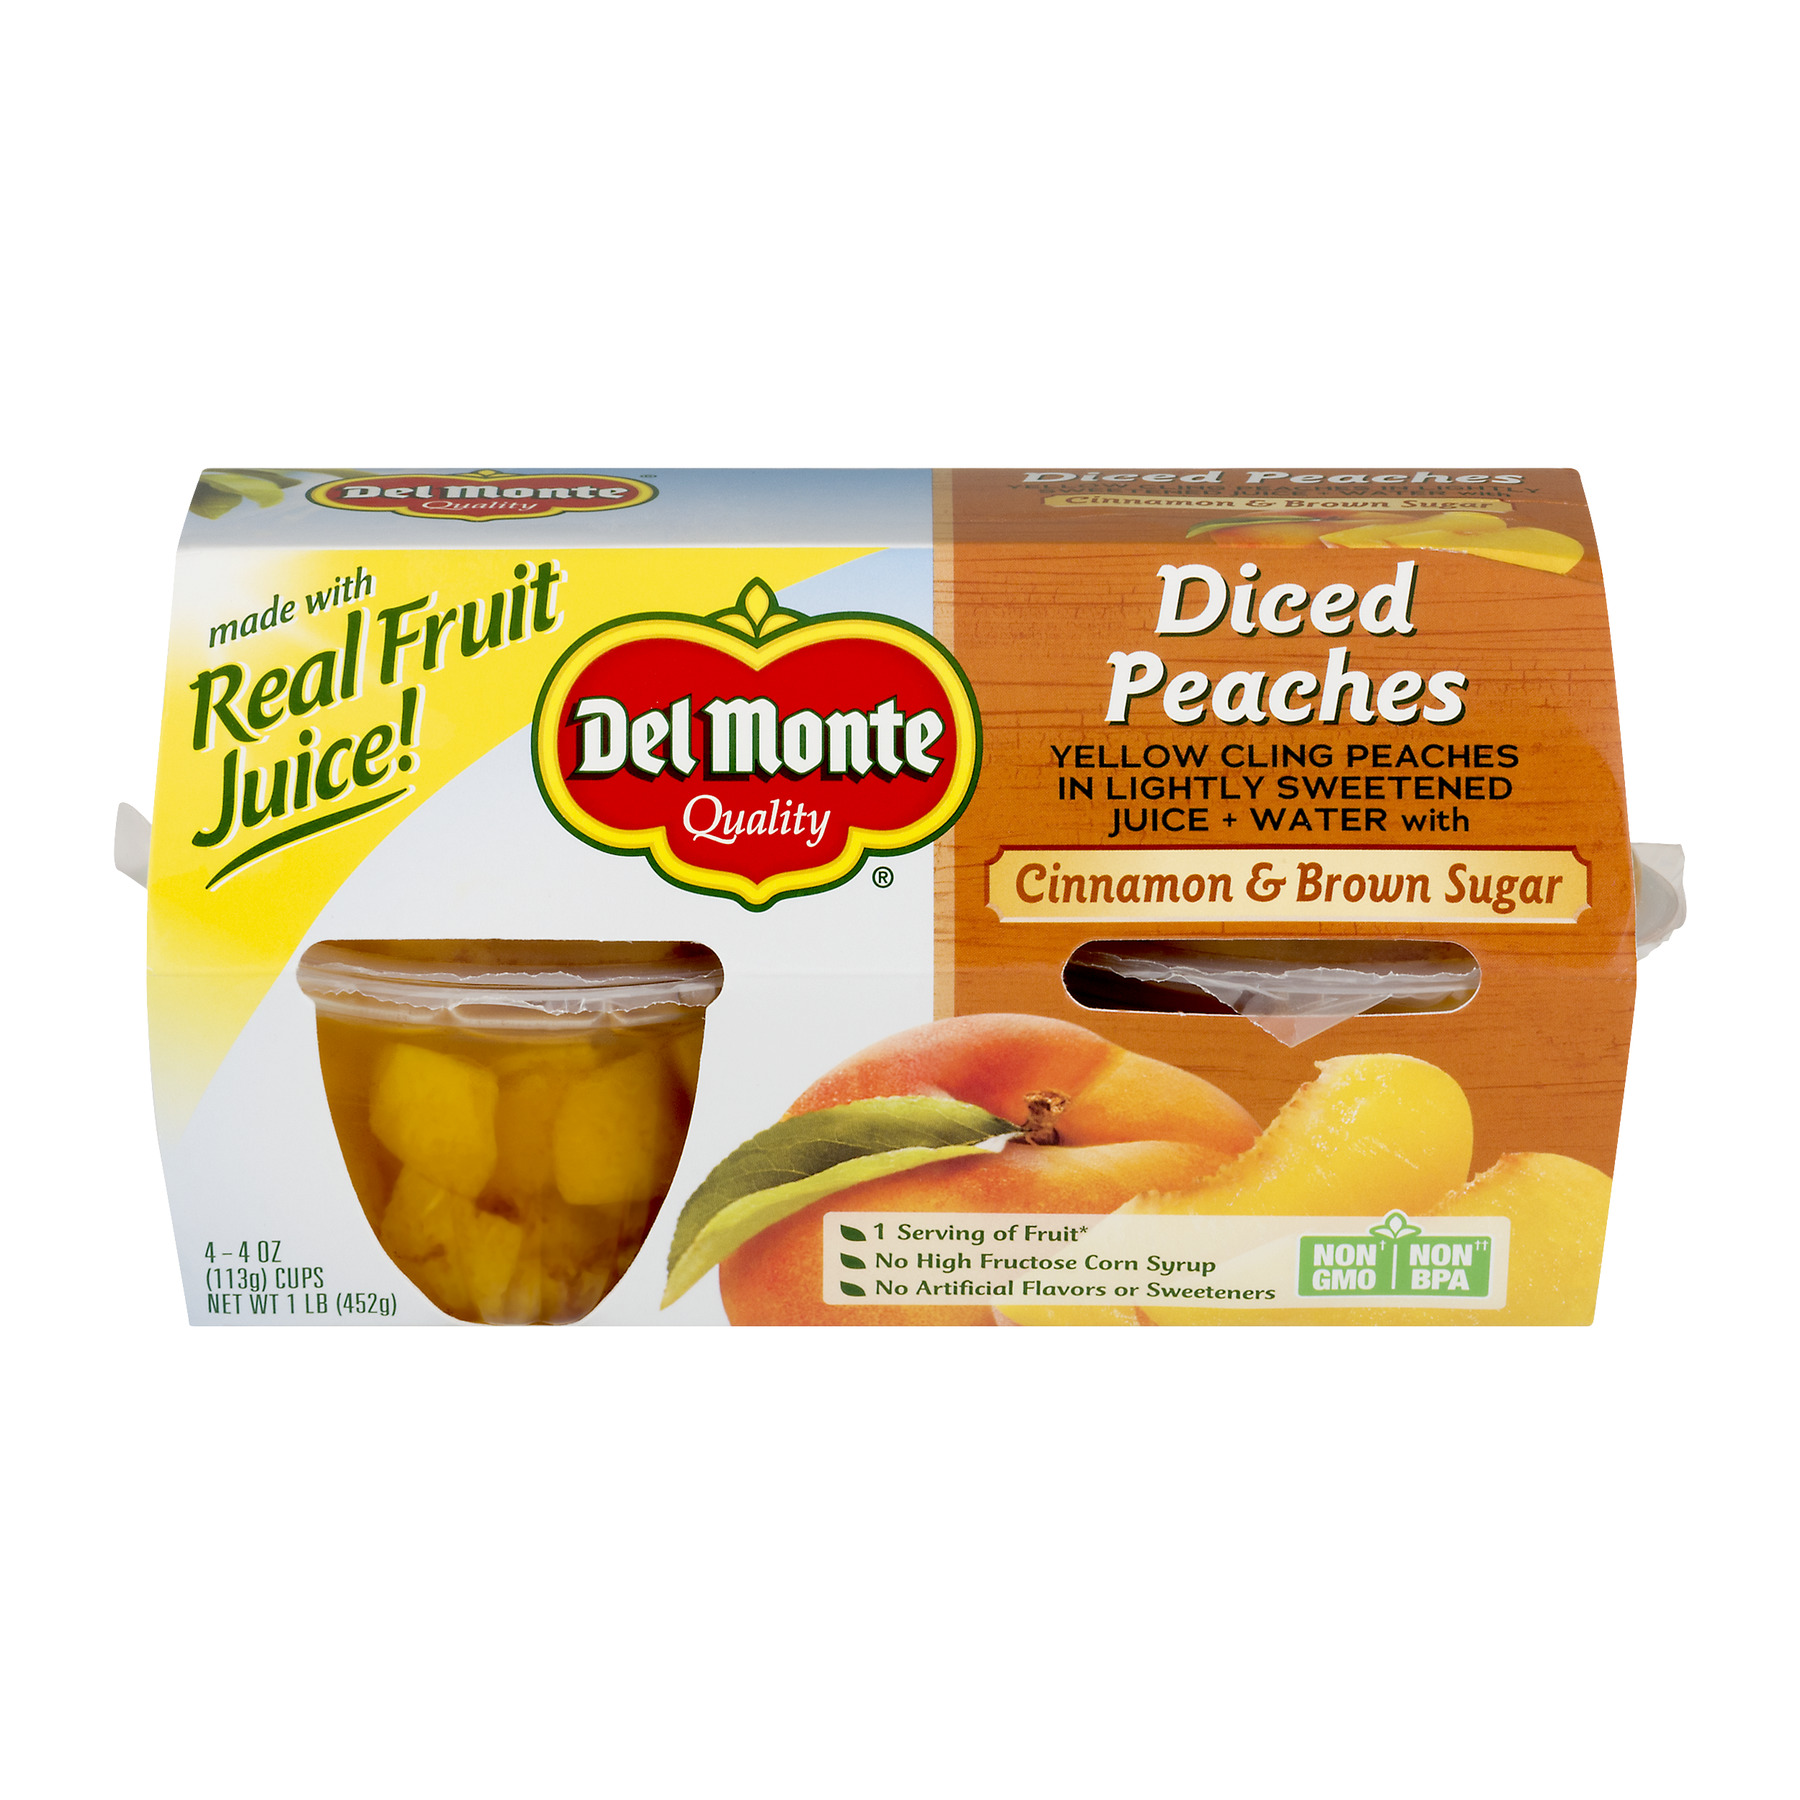 Del Monte Cinnamon & Brown Sugar Diced Peaches, 4 oz Cup, 4 Count Box